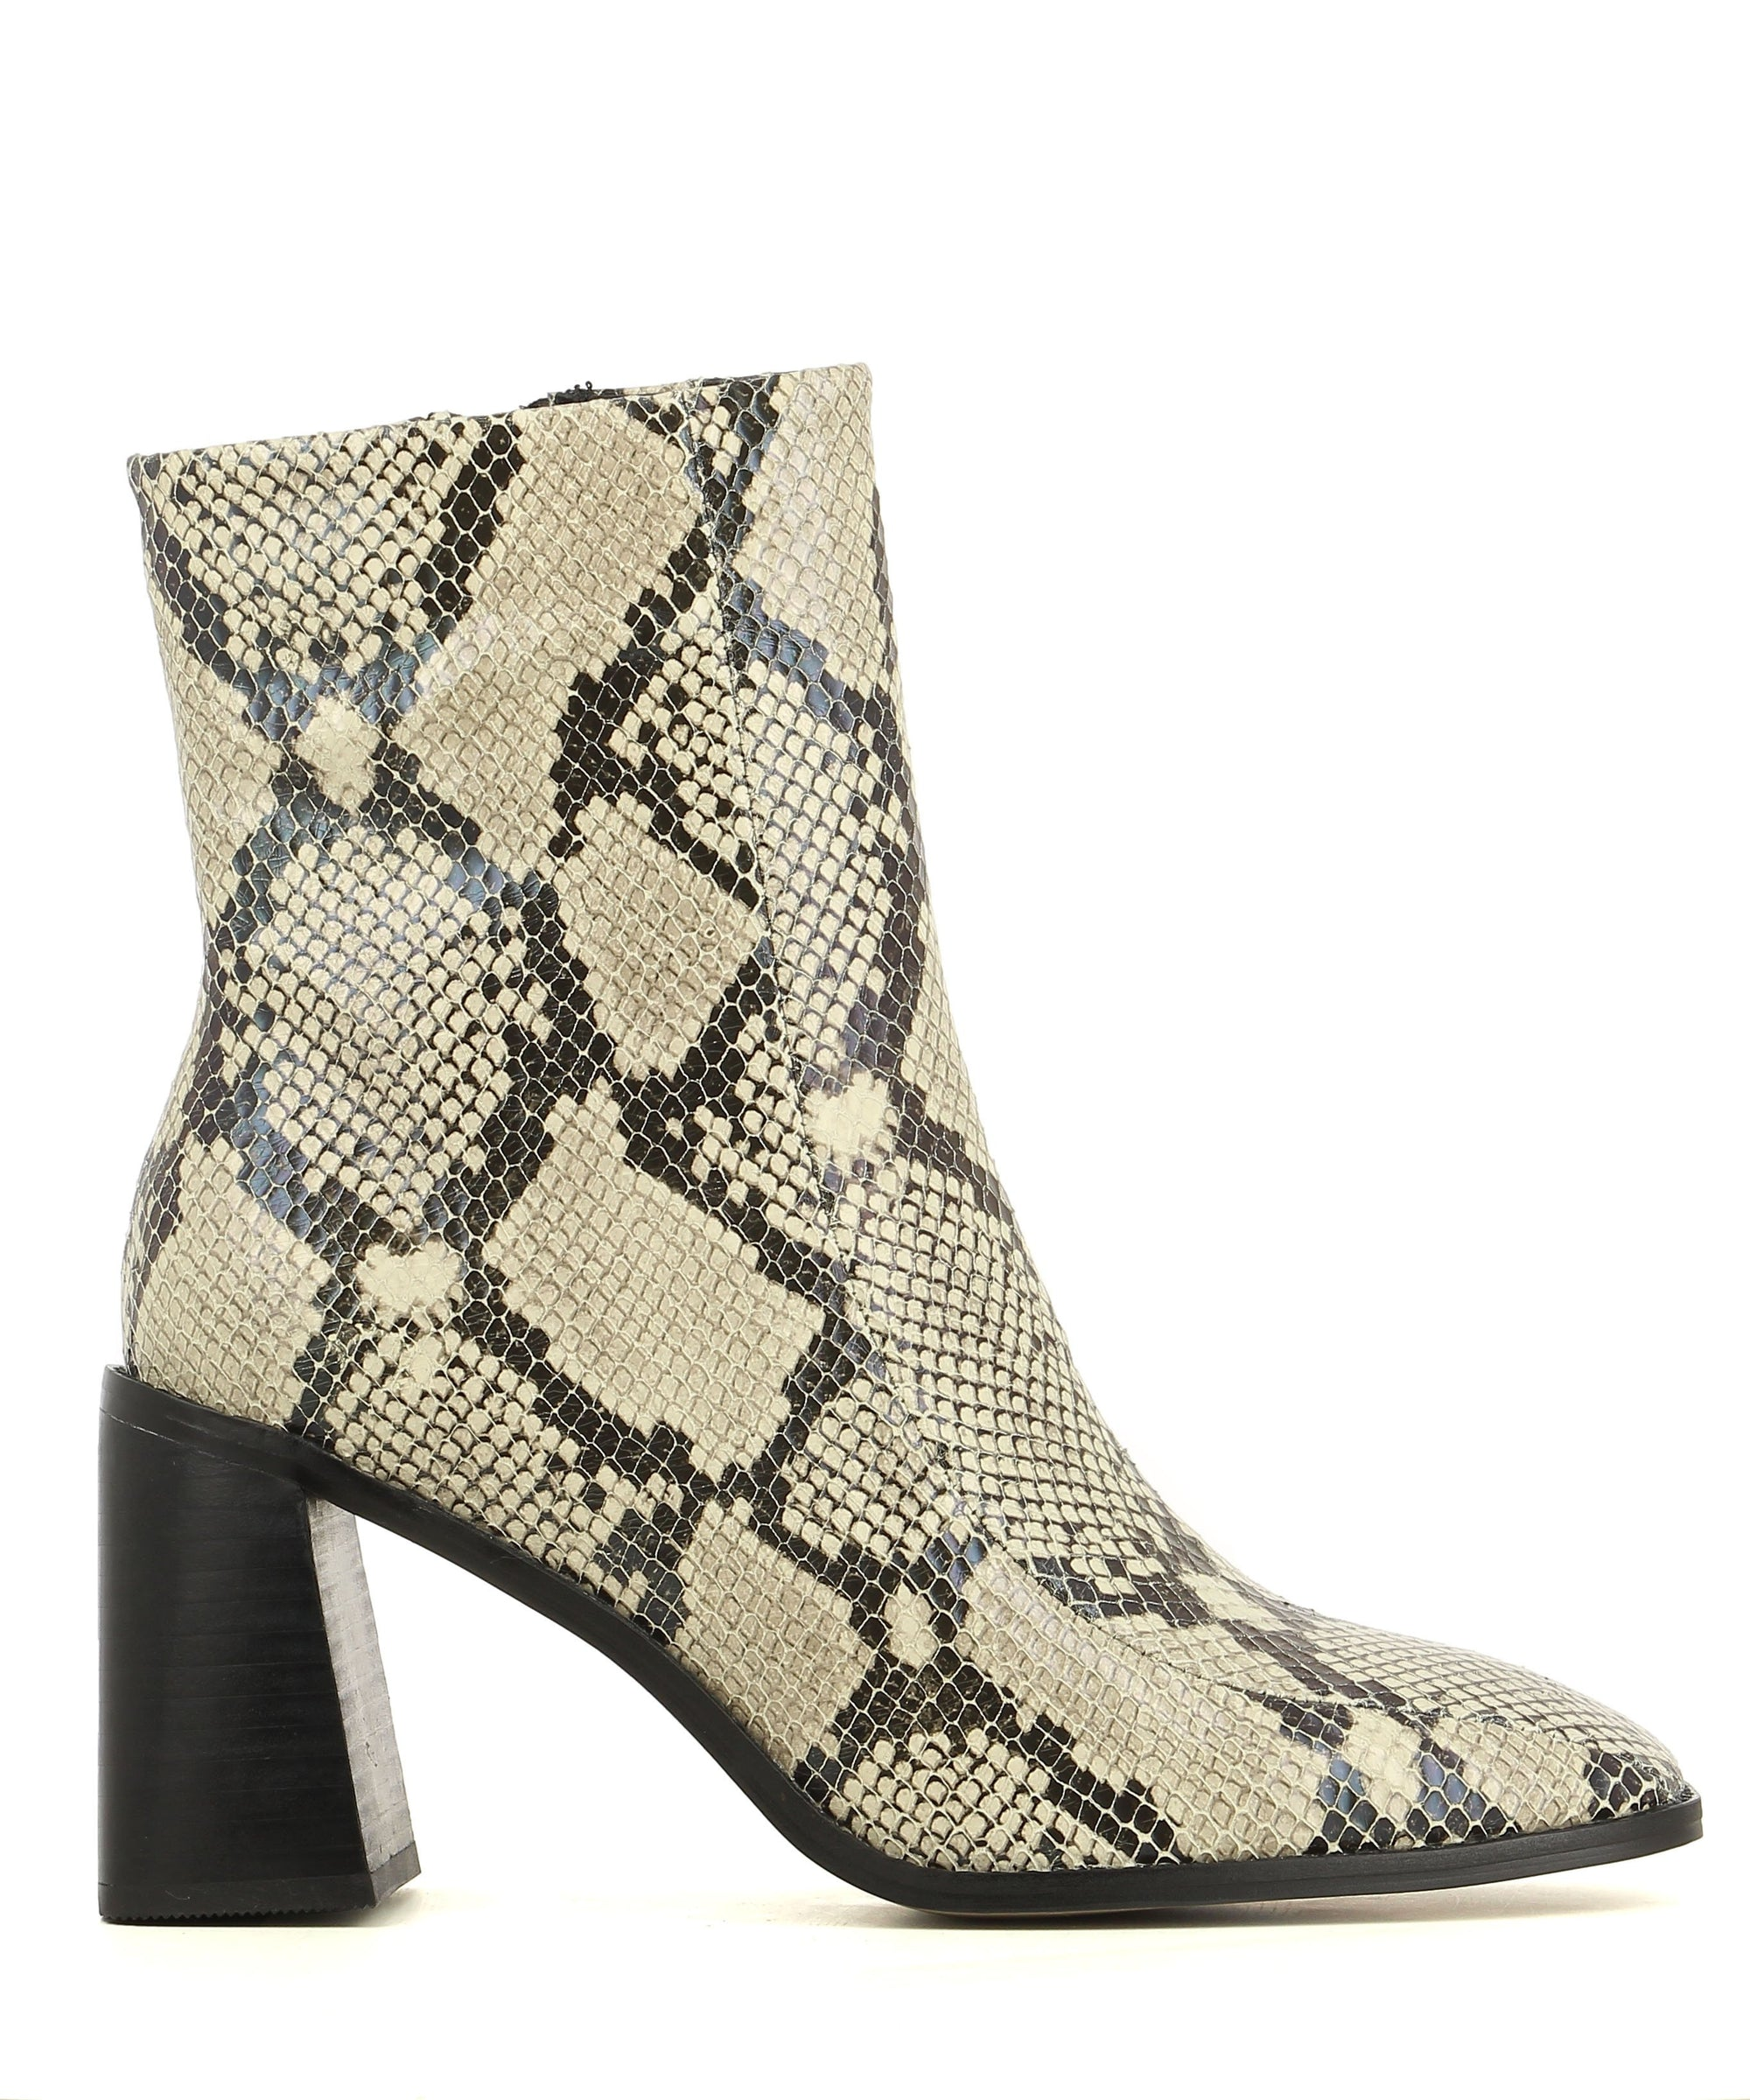 A snake skin printed leather ankle boot with a zipper fastening, 7.5cm block heel and a square toe. This style runs true to size.